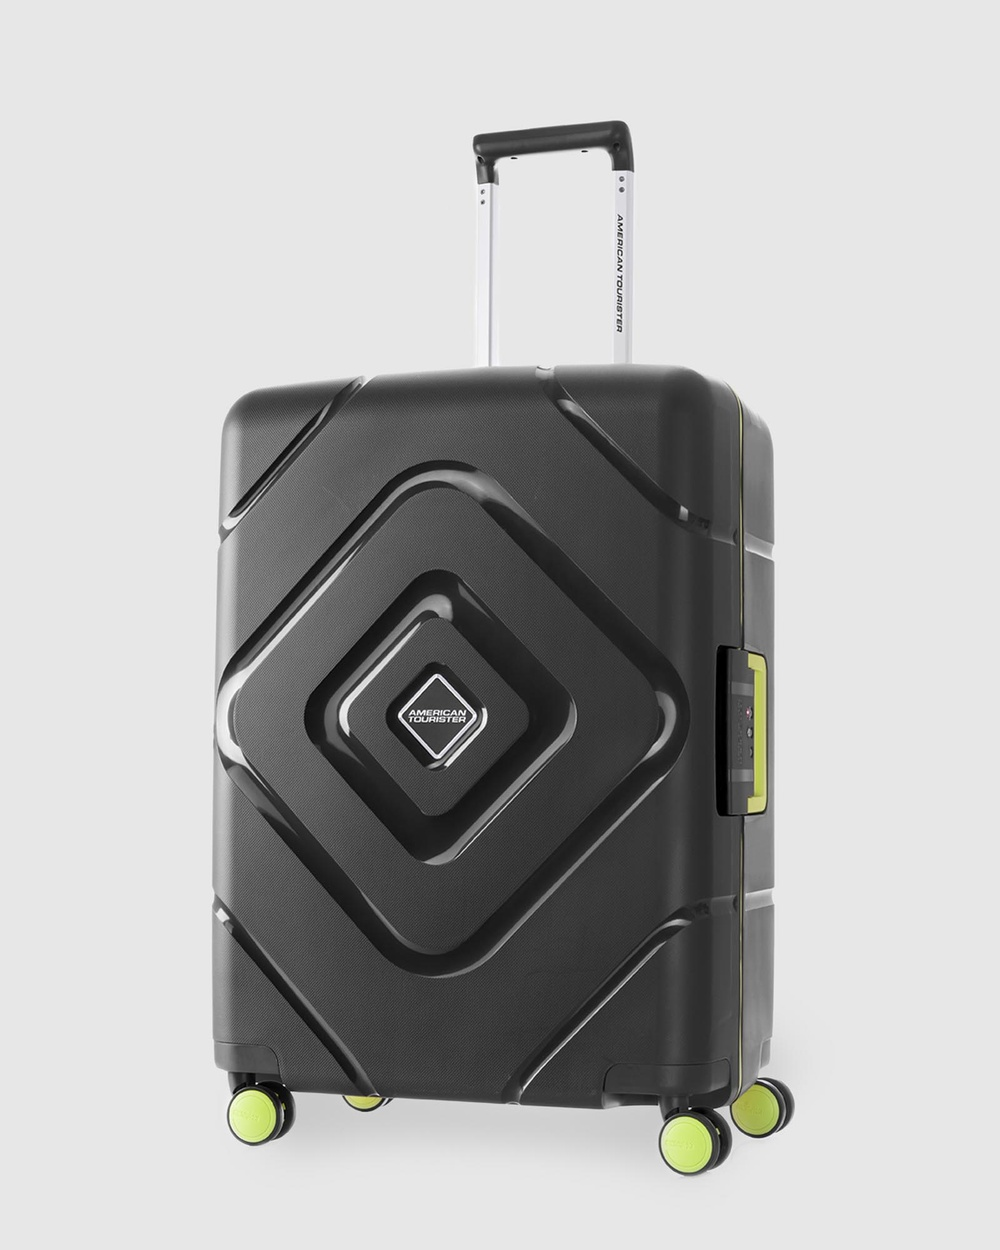 American Tourister Trigard Spinner 66 24 Travel and Luggage Black 66-24